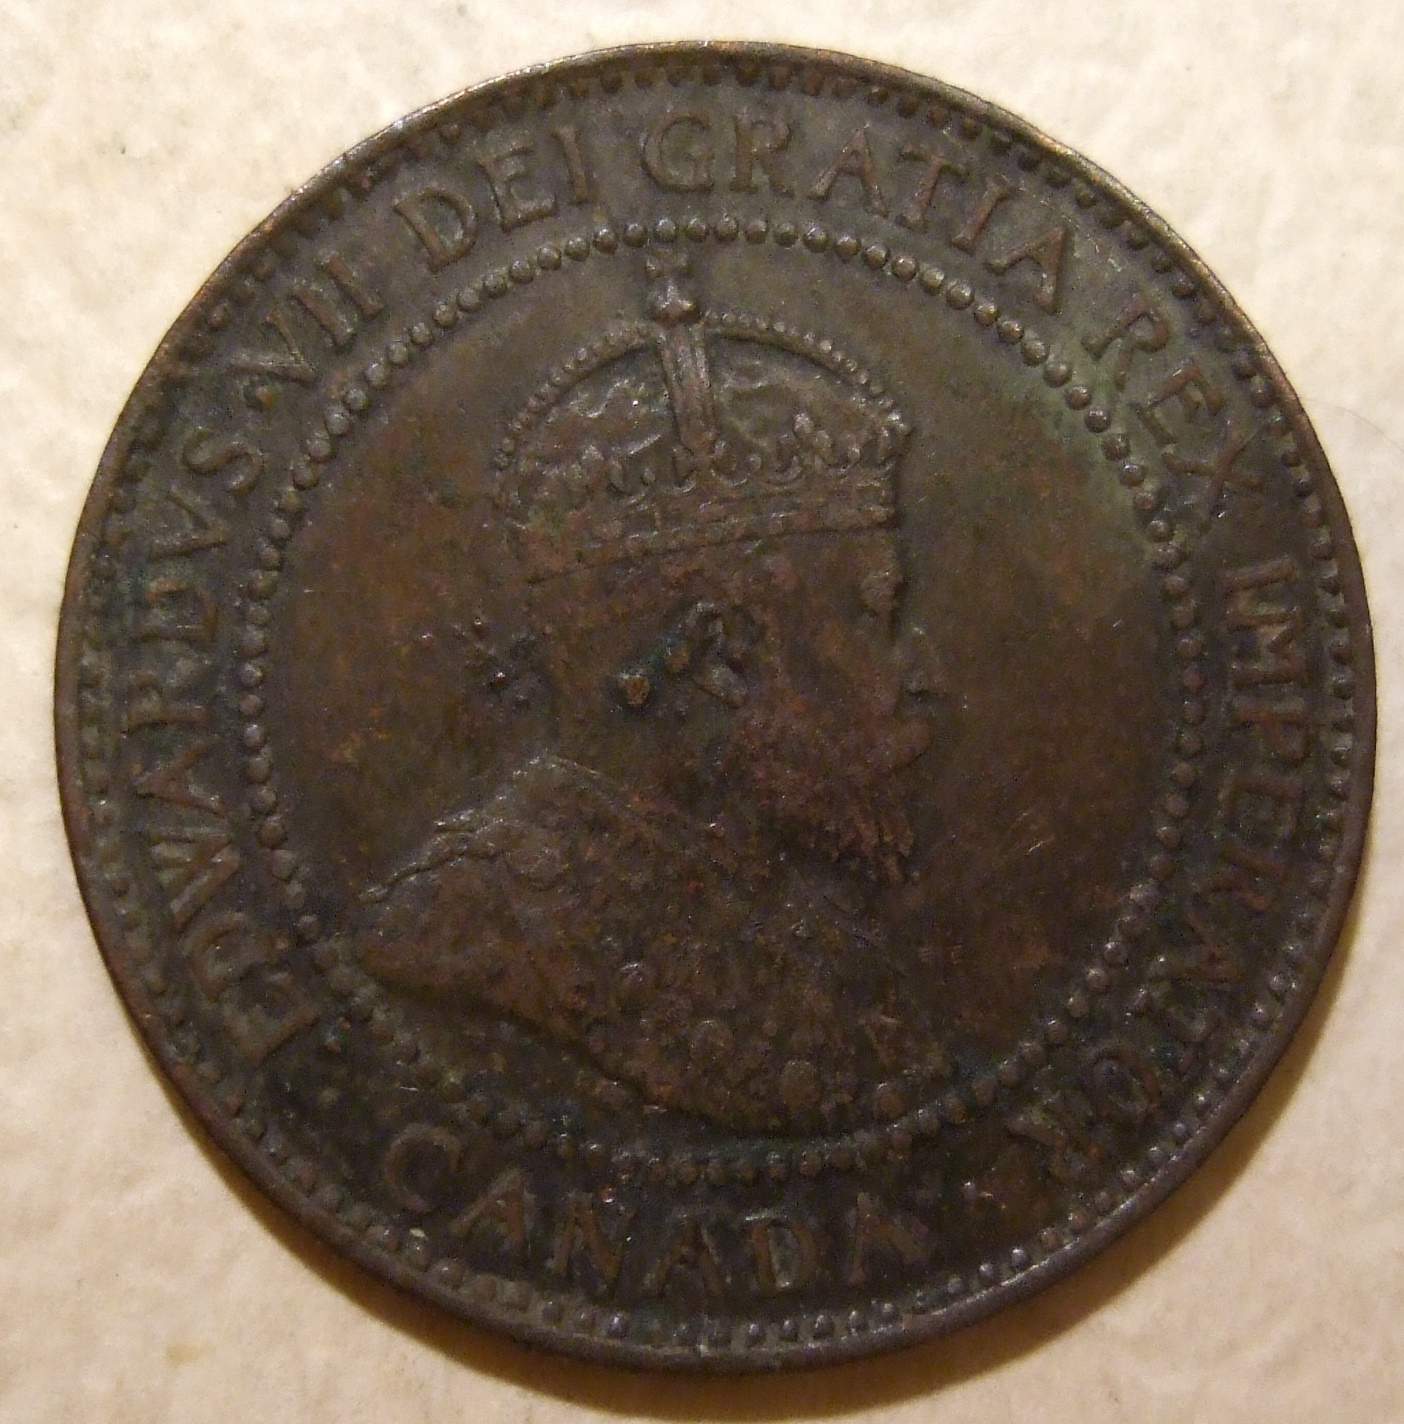 File:CANADA, EDWARD VII 1908 -ONE CENT b - Flickr - woody1778a.jpg - Wikimedia Commons